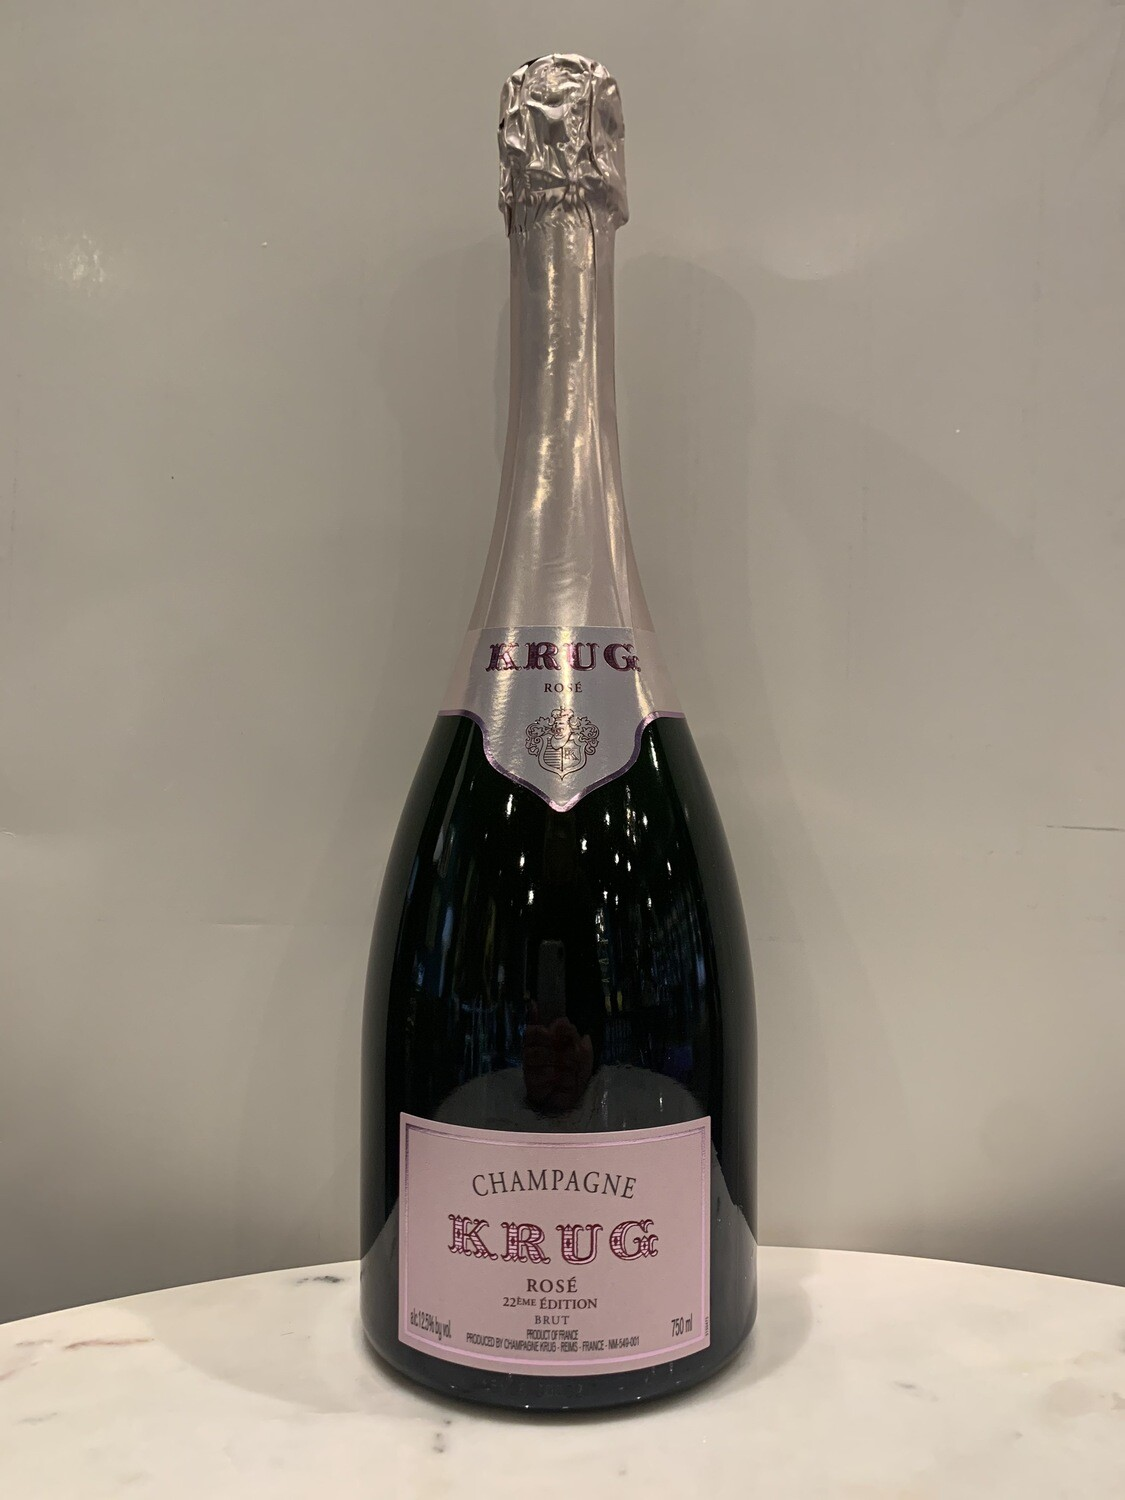 Krug Rose 22nd Edition.